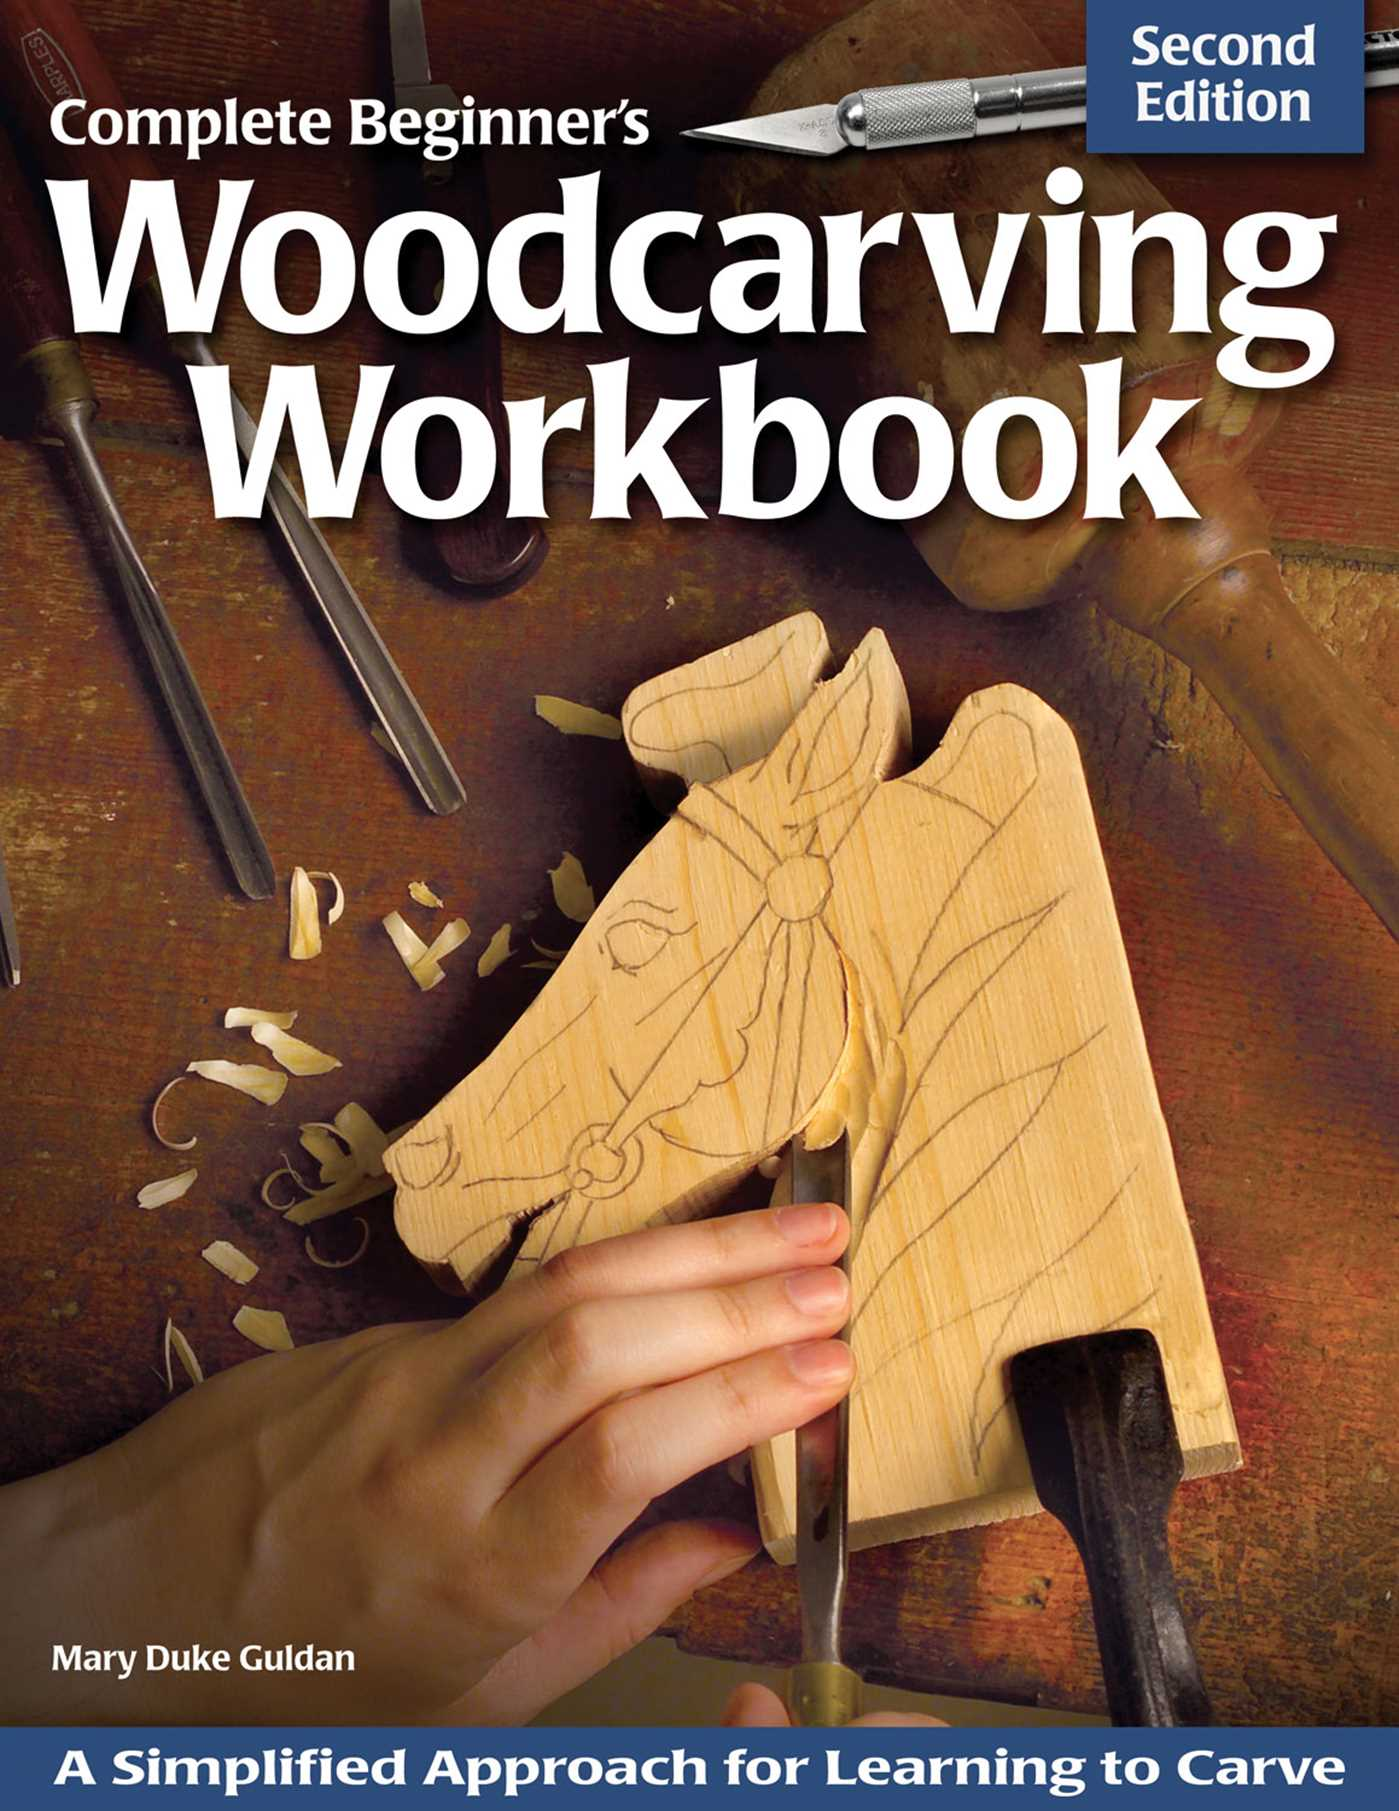 Complete beginner s woodcarving workbook book by mary guldan